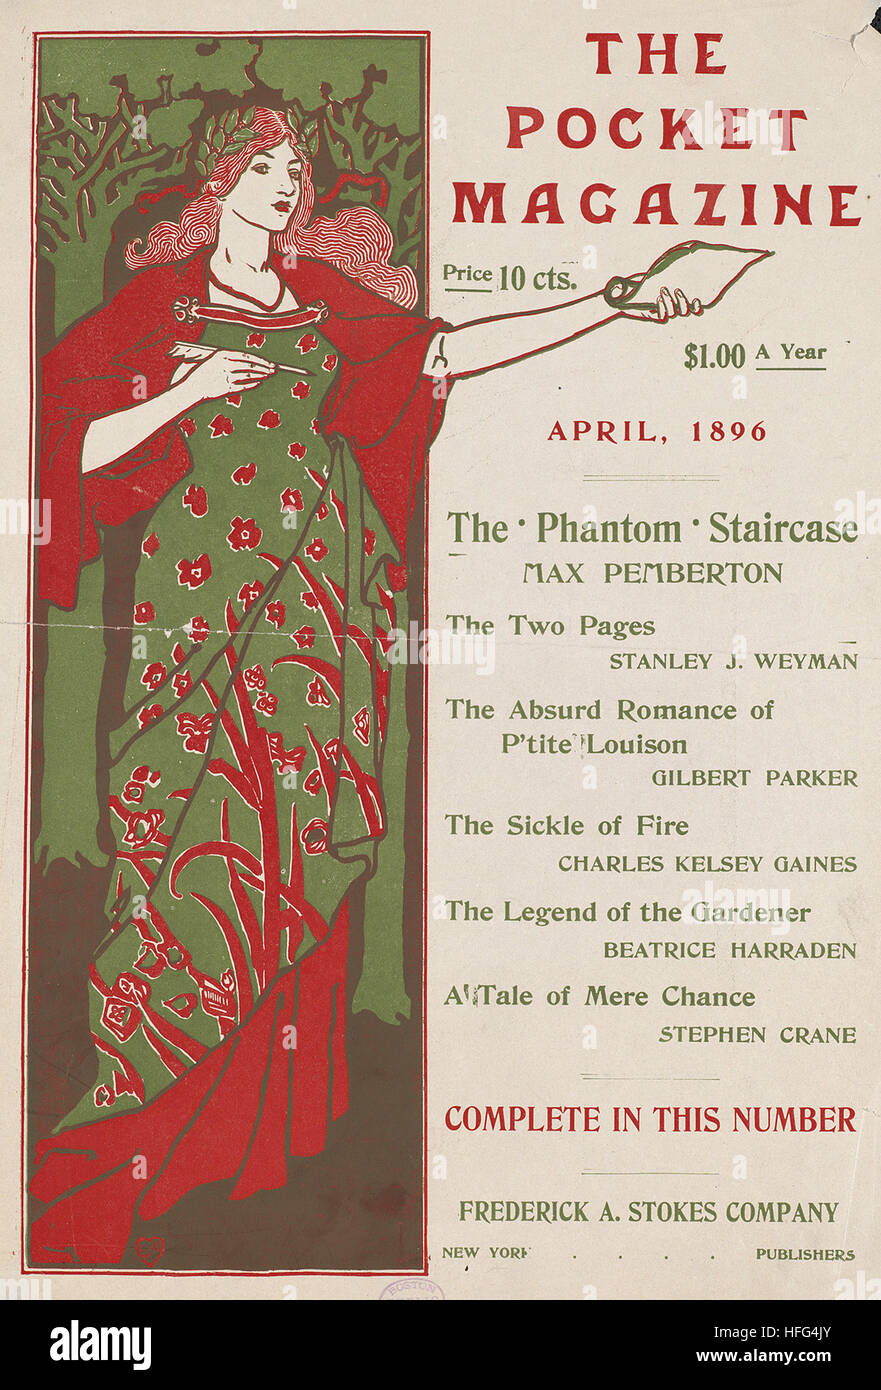 The pocket magazine, April, 1896 - Stock Image